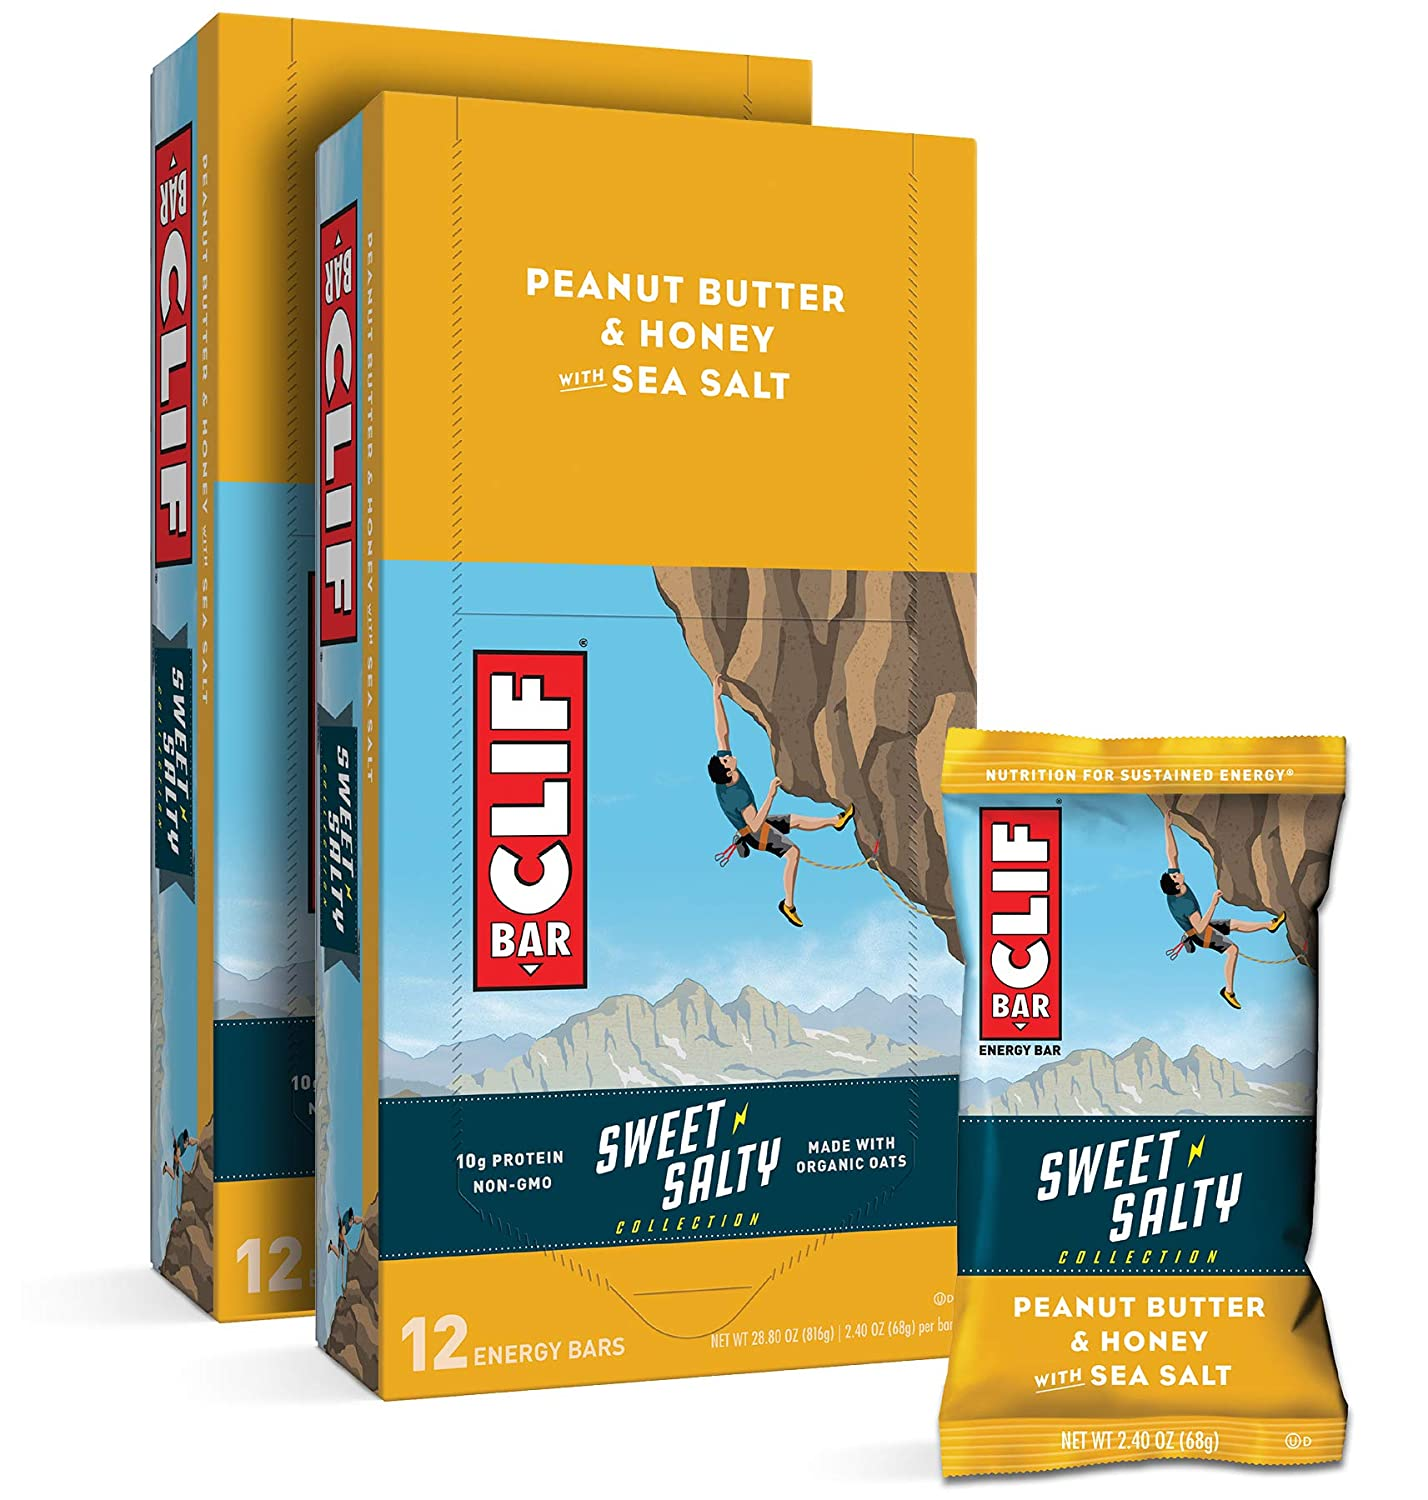 CLIF BAR - Sweet Salty Lowest price challenge Energy Sale special price wit Honey Peanut Butter Bars